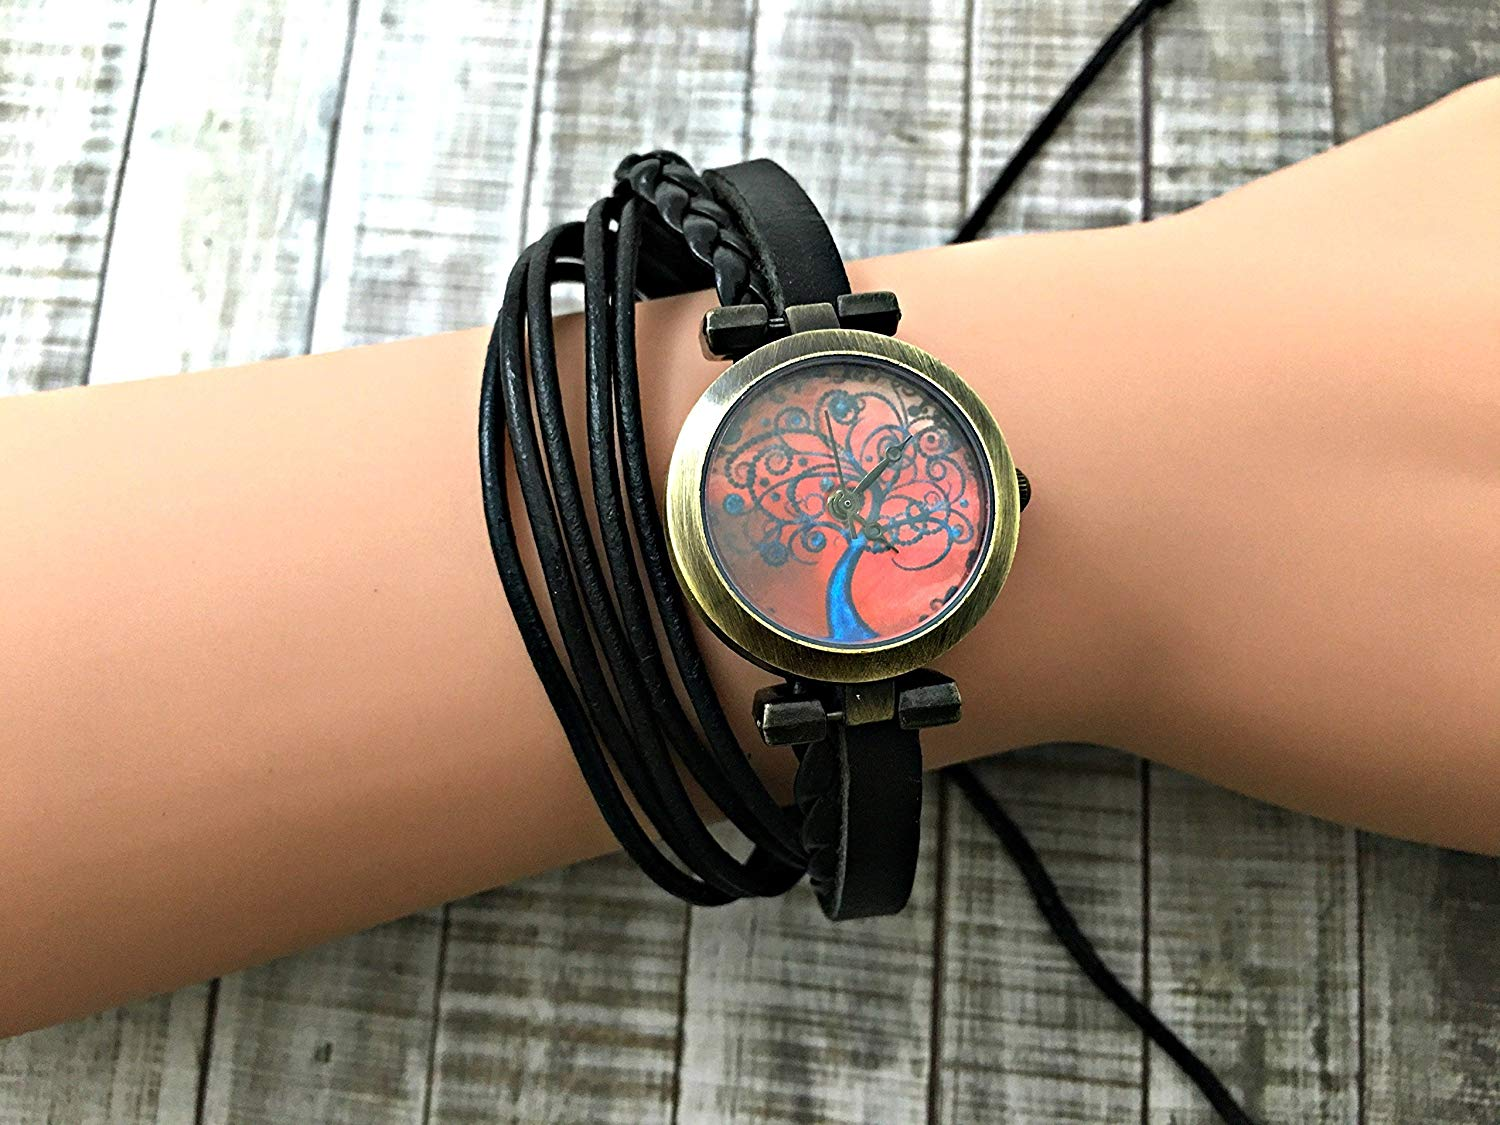 Tree Wrap Bracelet Leather Watch, Leather Wrap Bracelet Watch, Leather Wrap Art Watch, Vintage Retro Wrap Bracelet Watch, Wrap Genuine Leather Watch 010